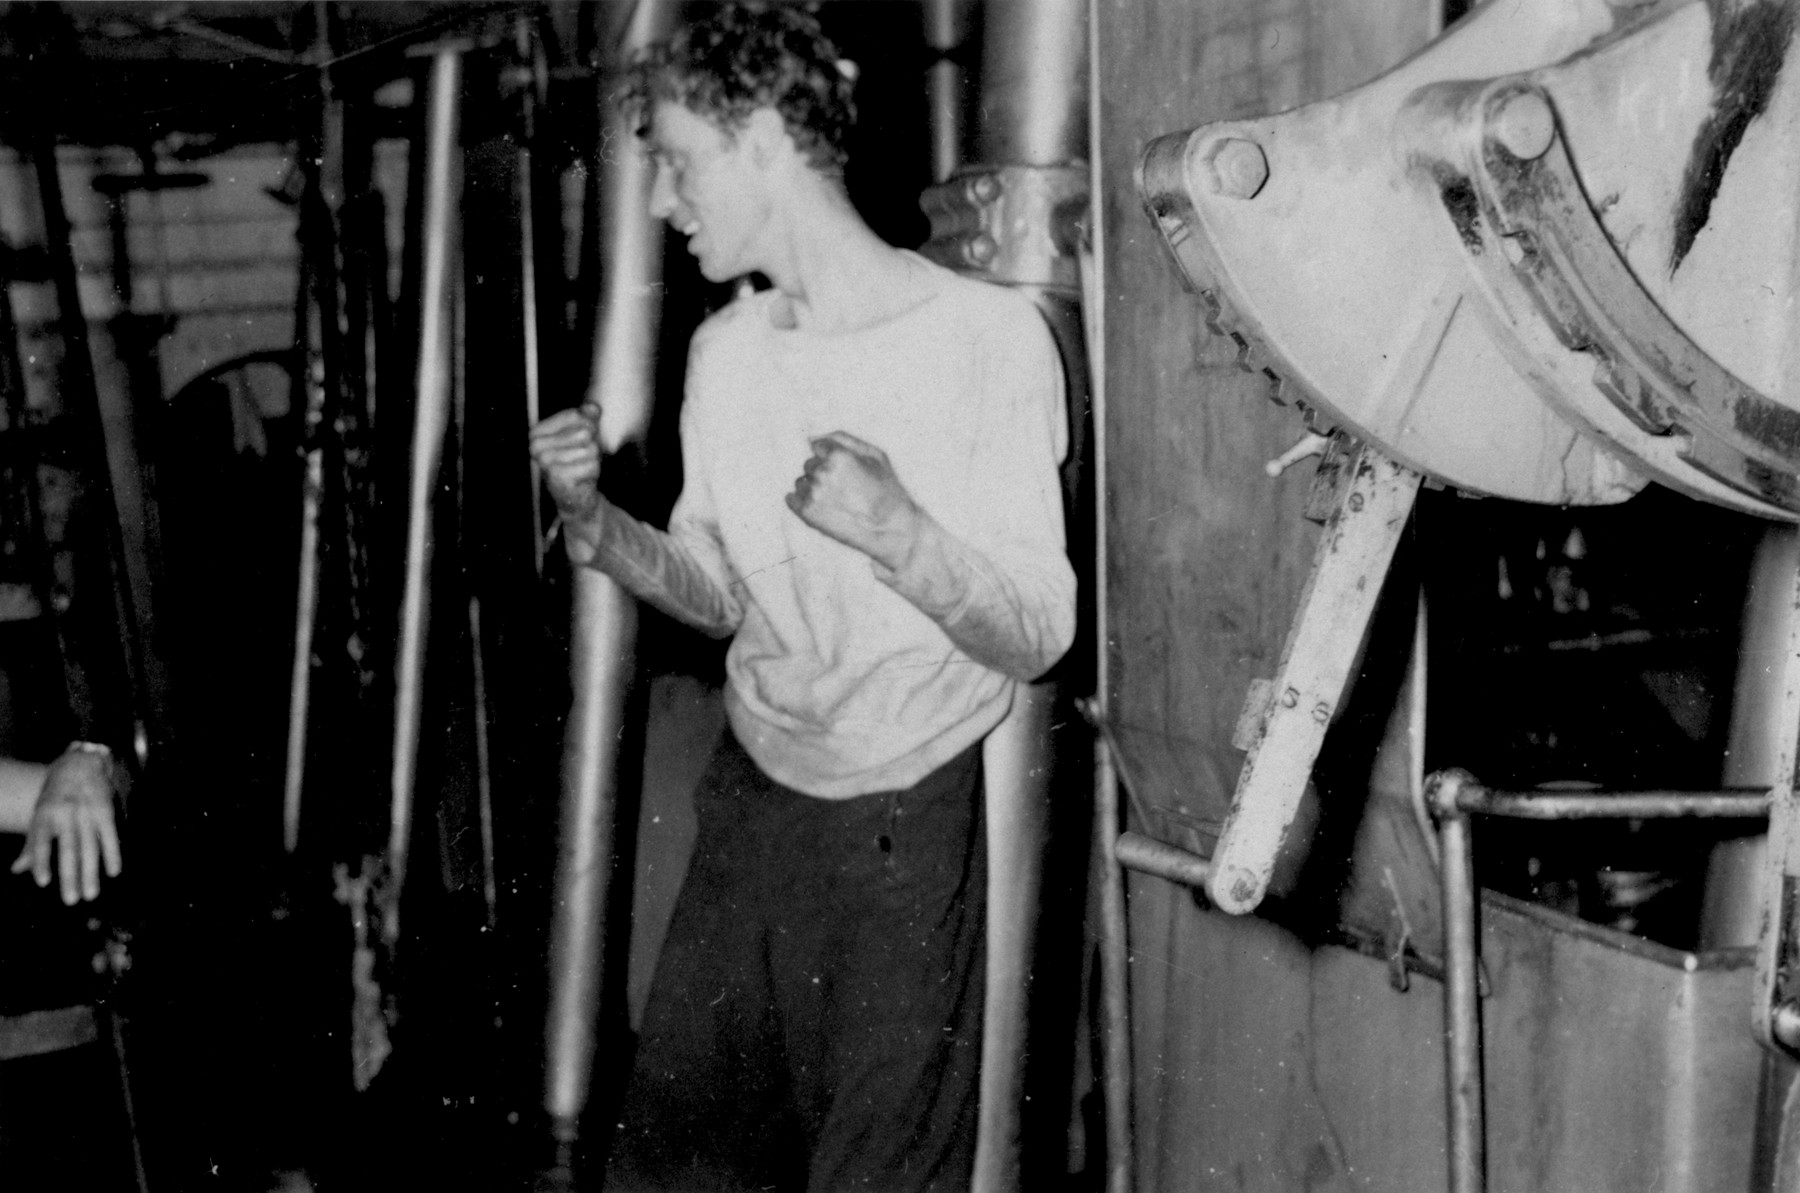 Paul Yarin of Boston stands in the flooded engine room of the President Warfield after the gale that nearly sank the ship during its first attempt to cross the Atlantic Ocean.  After the ship returned to port following the storm, Yarin left the ship due to illness.  It was a very severe case of rheumatoid arthritis. He spent two years in a VA hospital (he was a WWII Coast Guard vet). He died in 1965 at age 38.